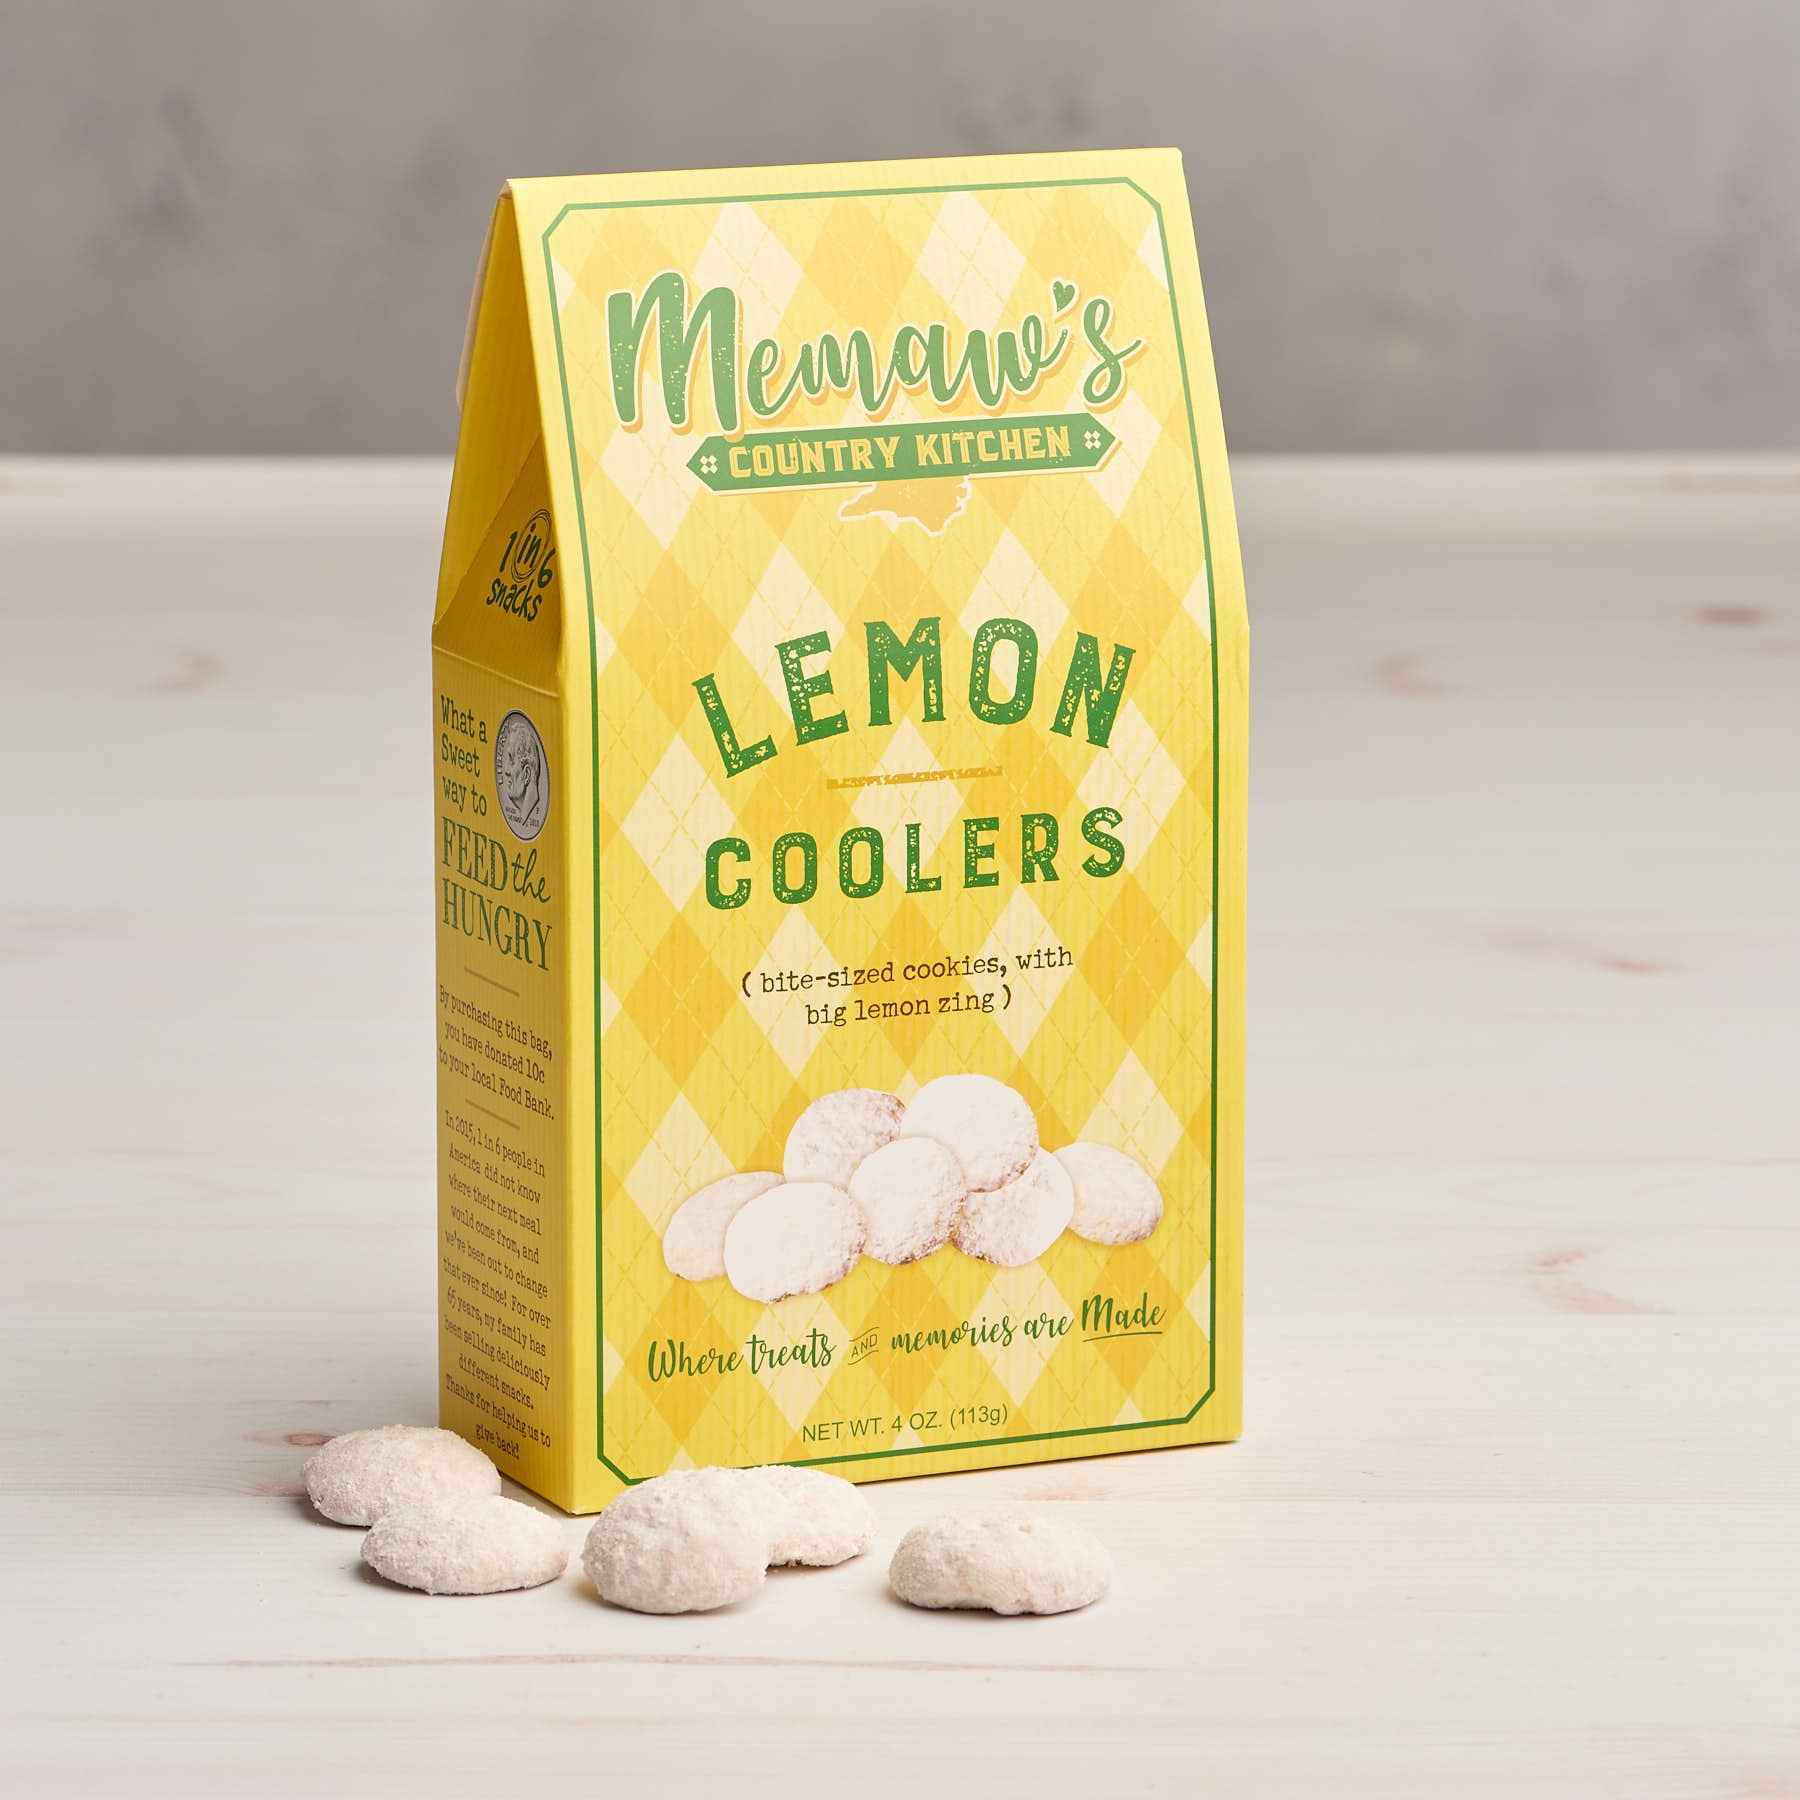 Memaw's Country Kitchen Lemon Coolers